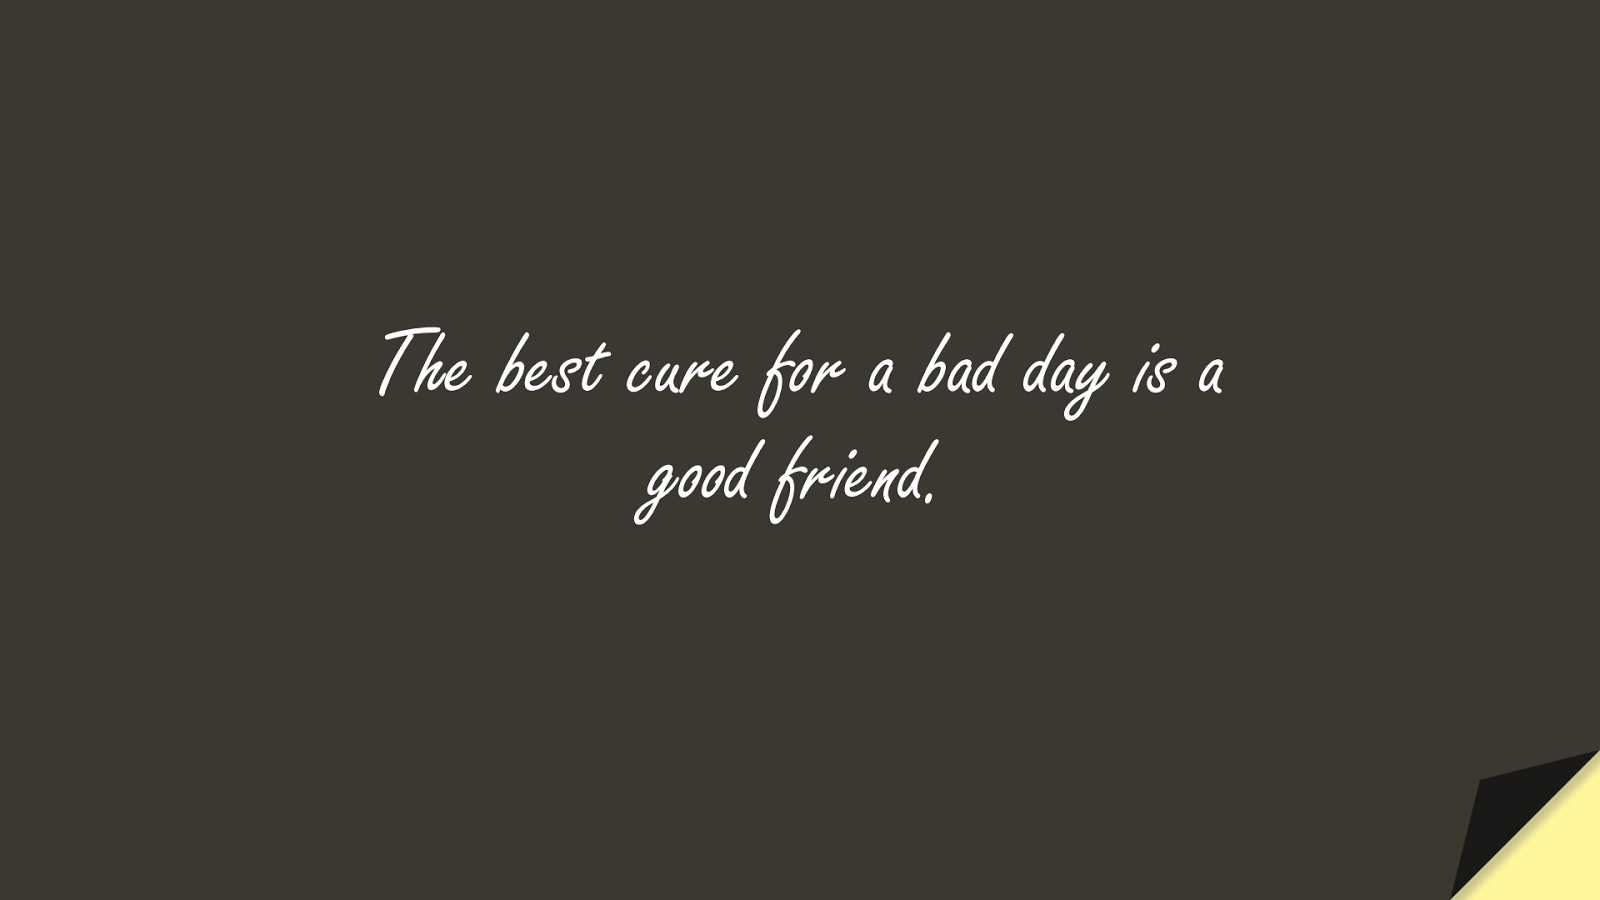 The best cure for a bad day is a good friend.FALSE